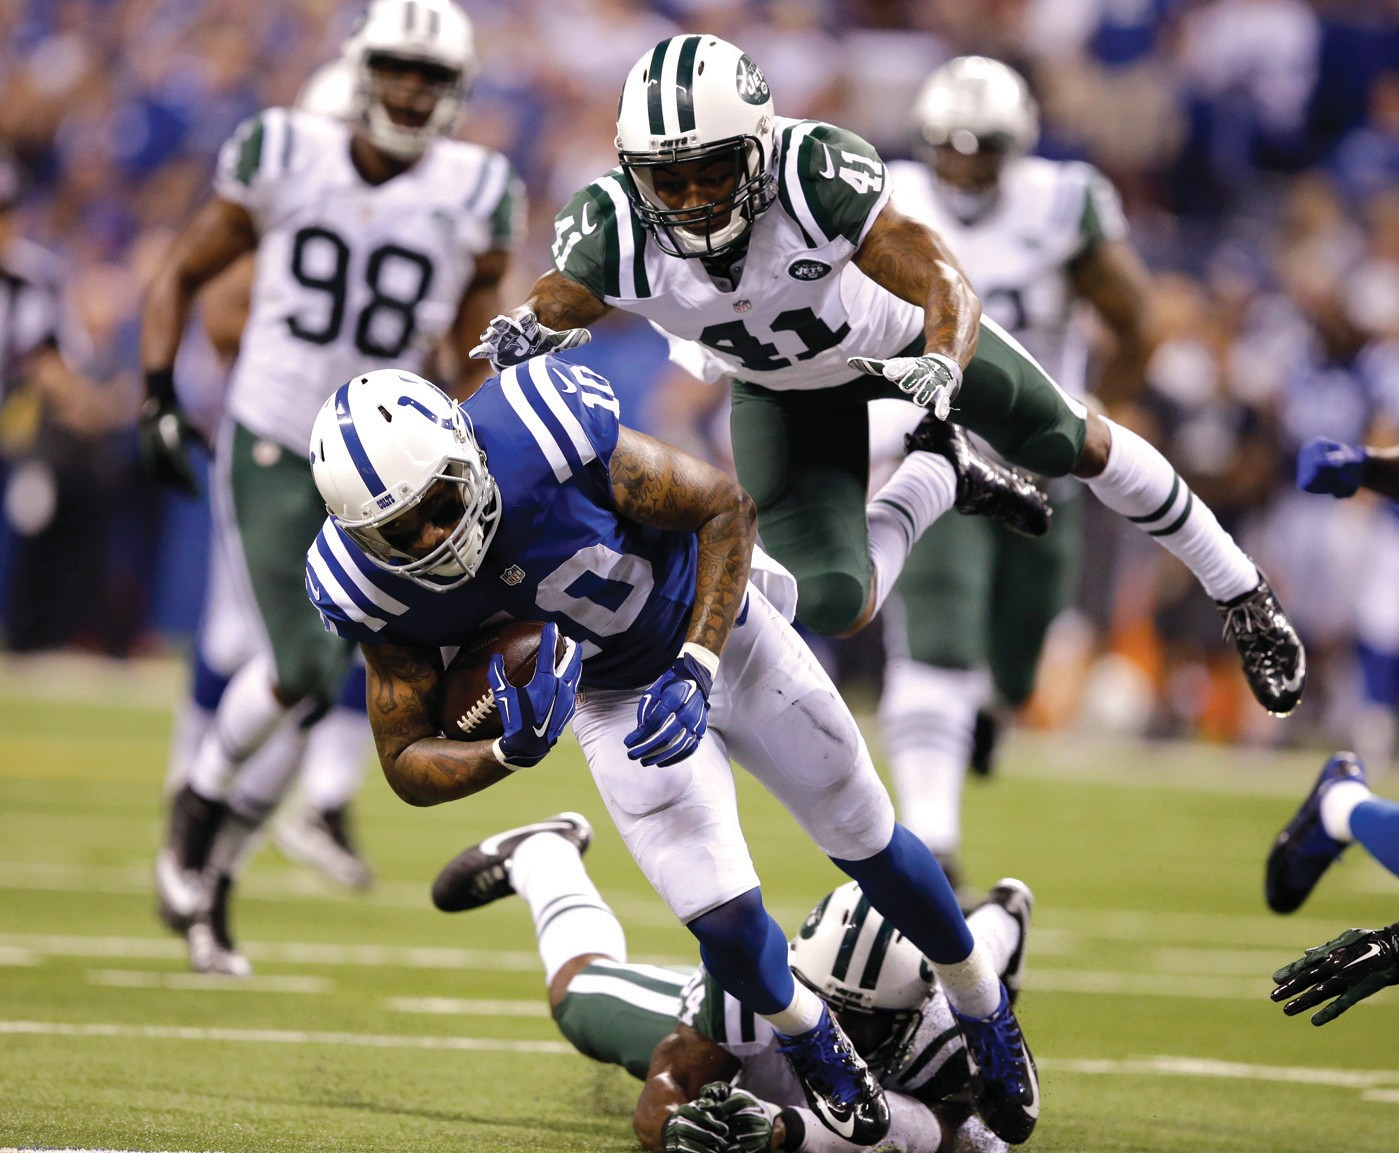 New York Jets defensive back Buster Skrine (41) and New York Jets cornerback Darrelle Revis (24) dive to tackle Indianapolis Colts wide receiver Donte Moncrief (10) during the second half of an NFL football game in Indianapolis, Monday.